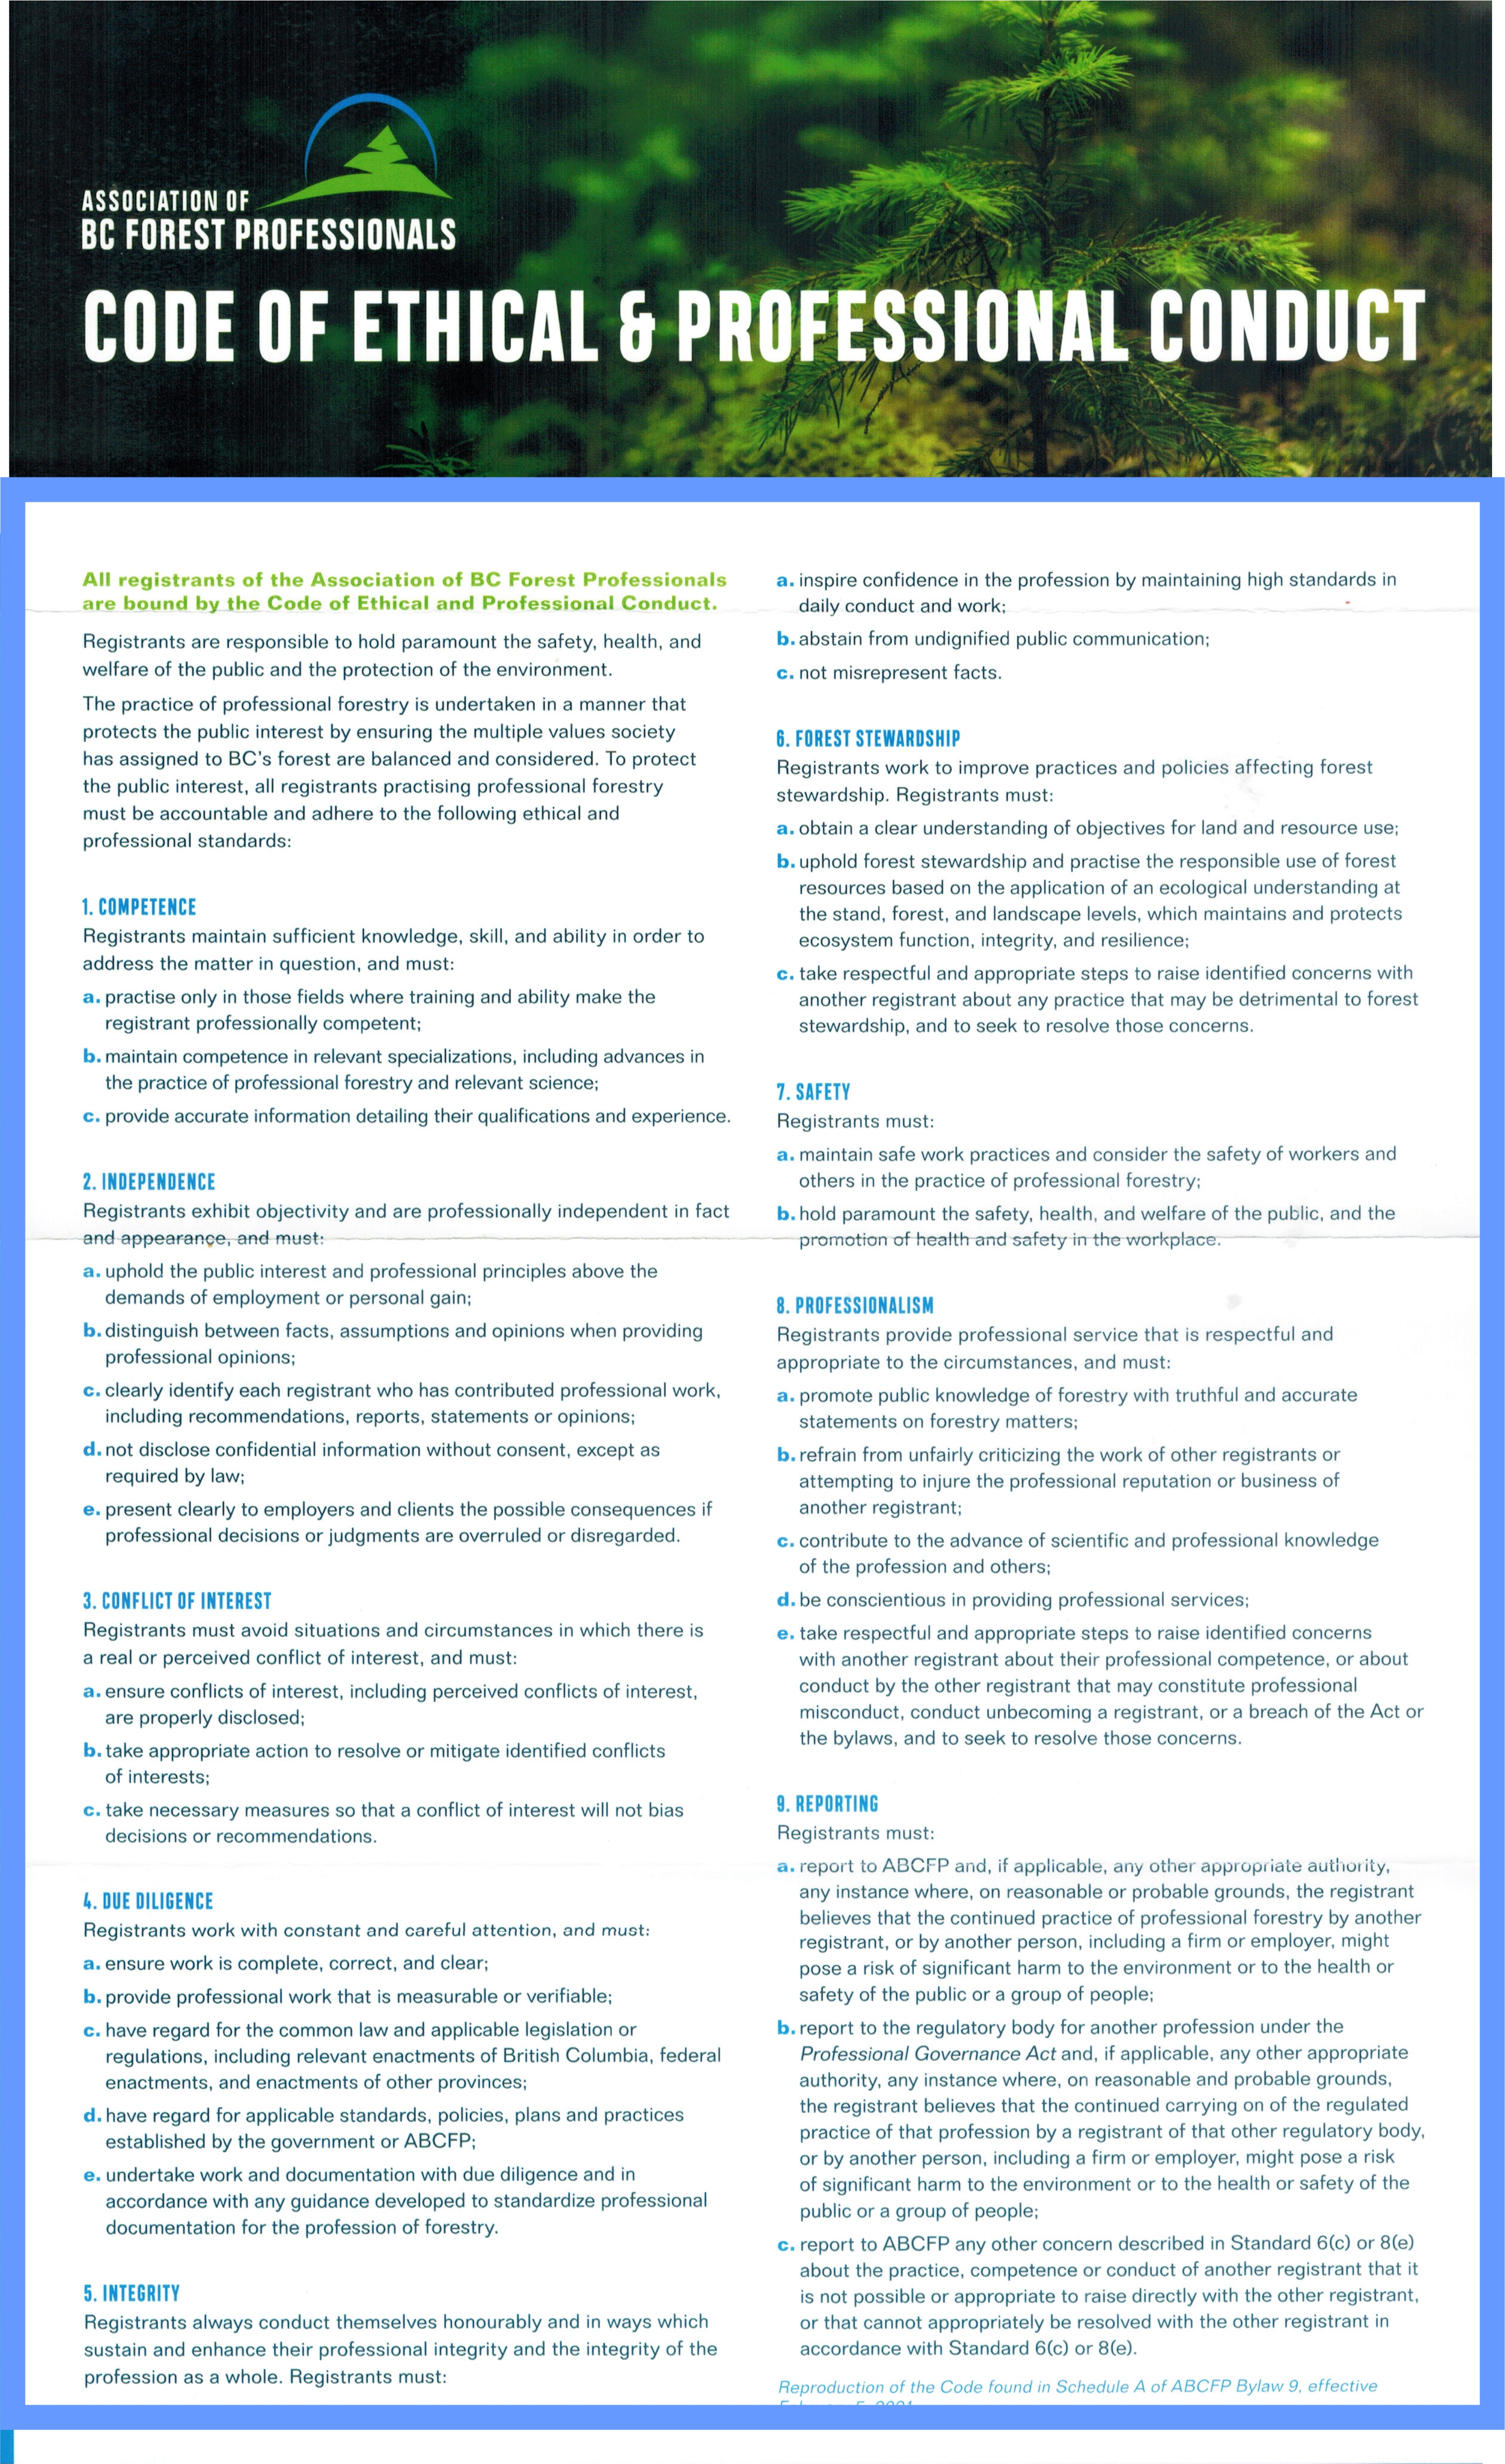 ABCFP Code of Ethical and Professional Conduct